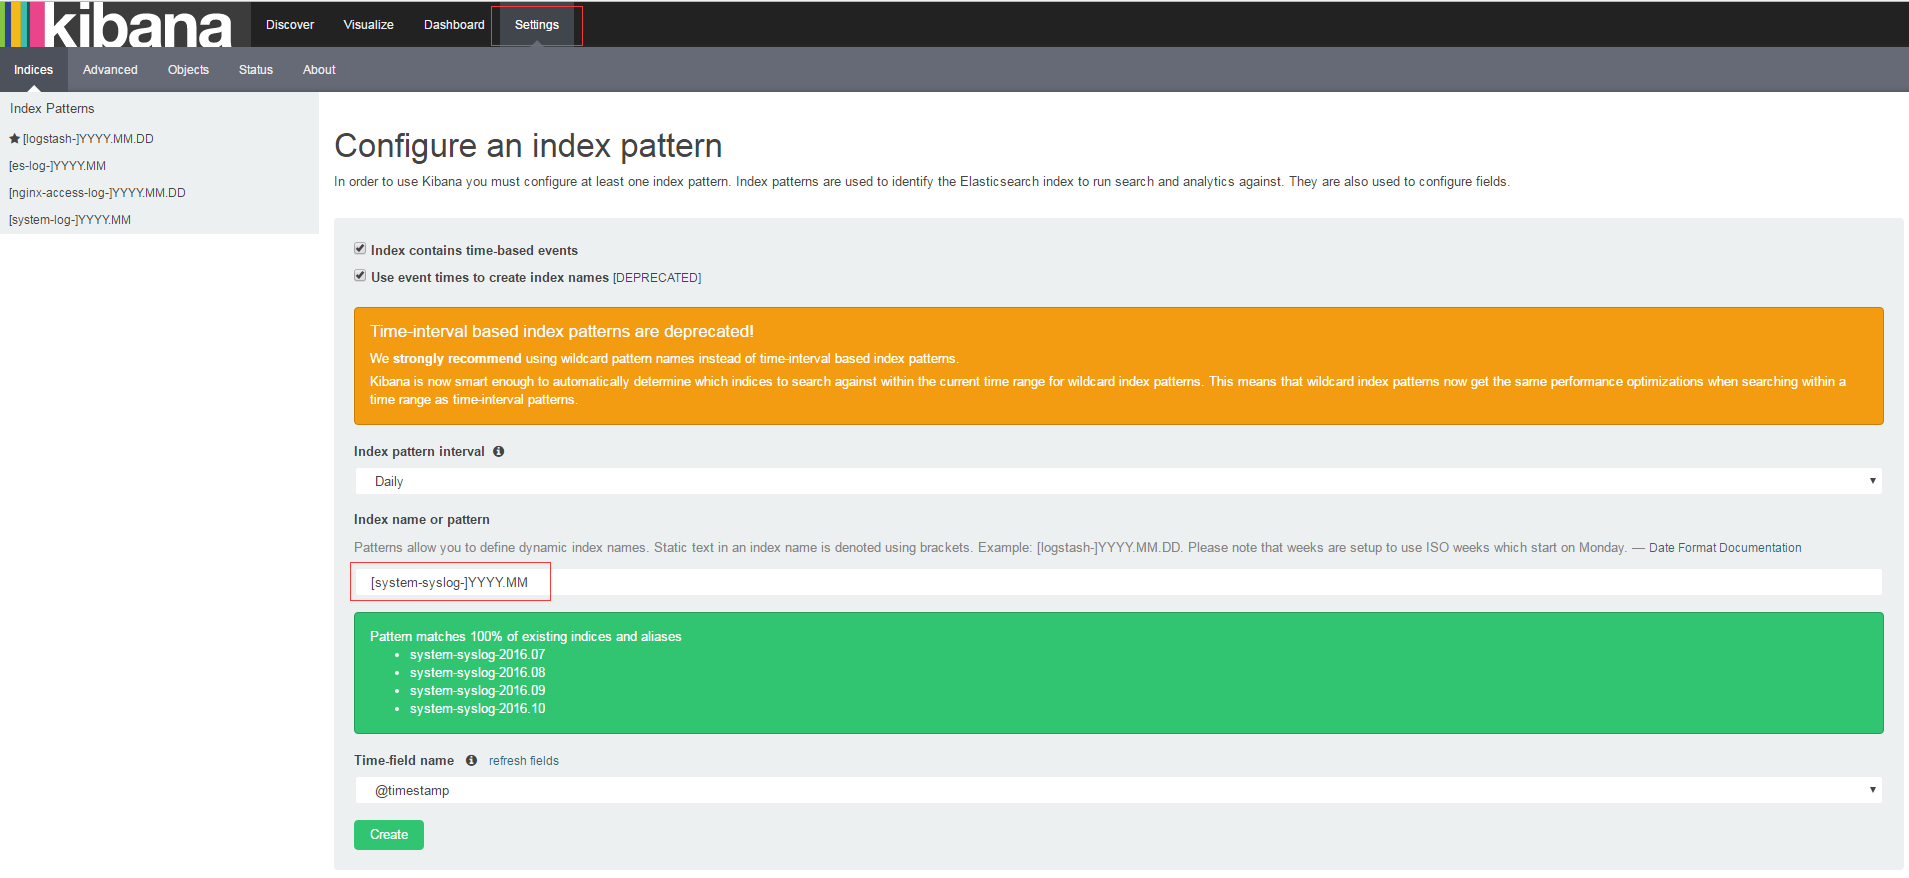 Kibana-Configure-index-pattern